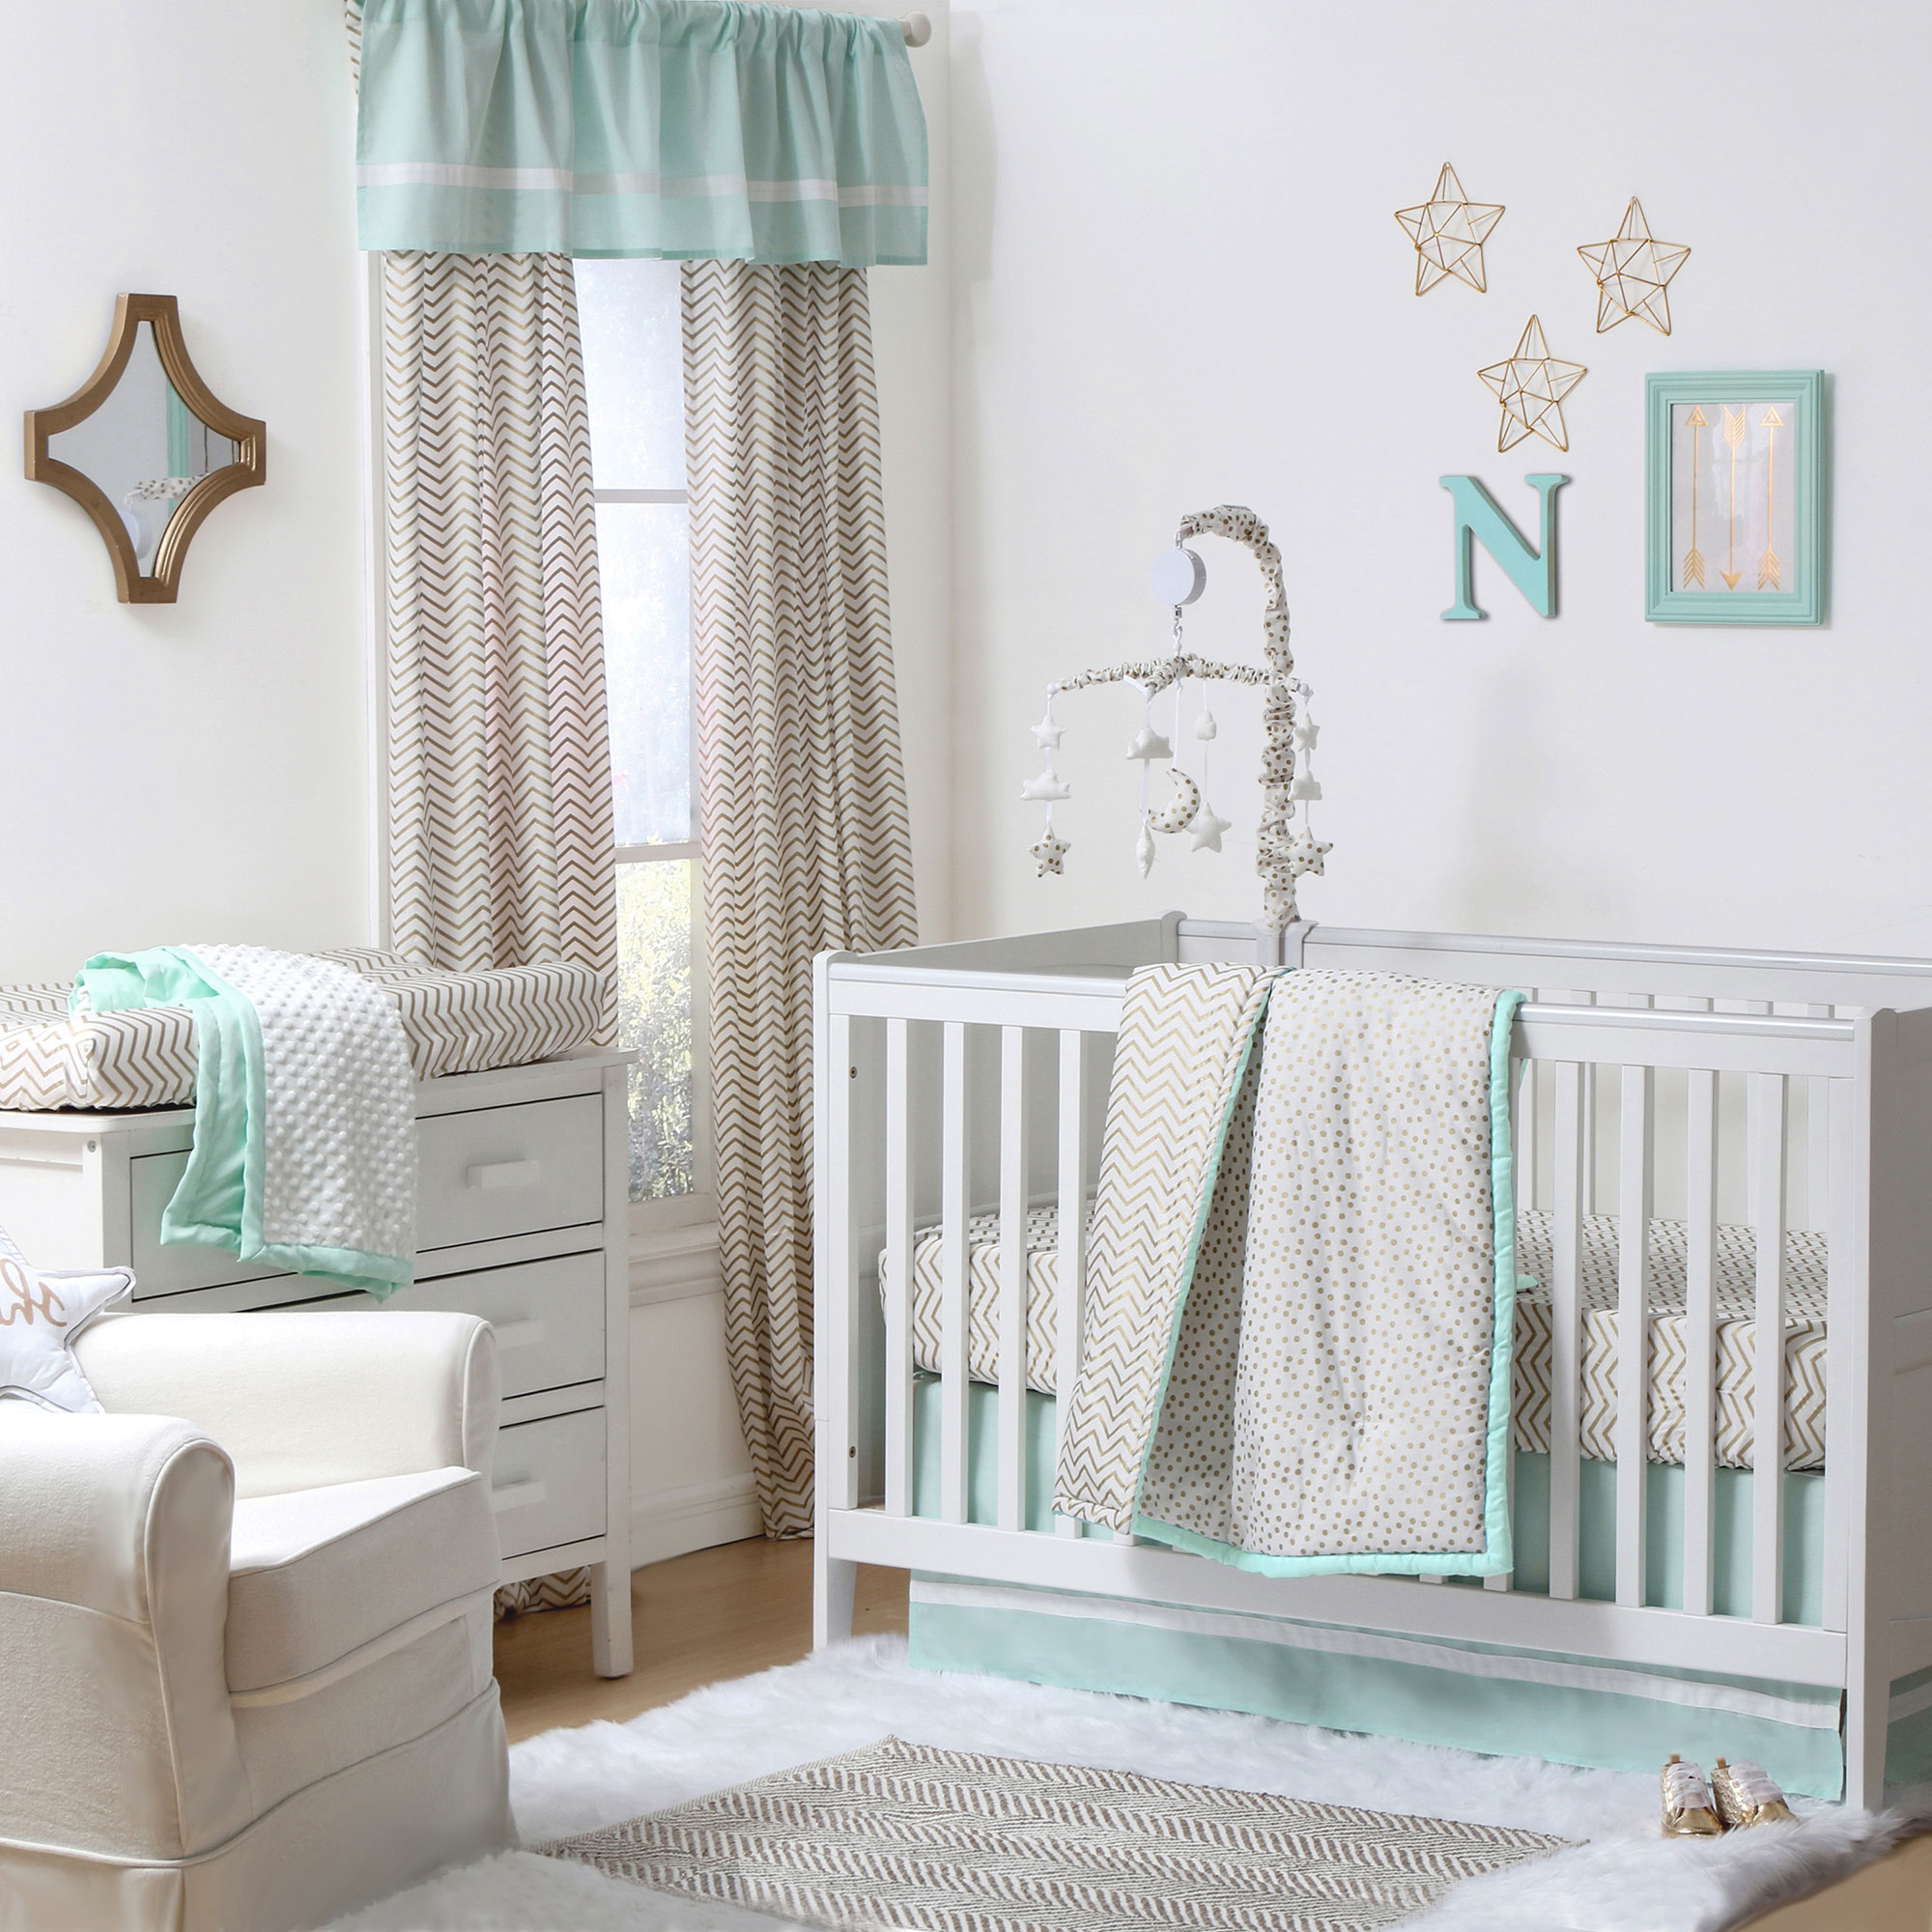 The Peanut Shell 4 Piece Baby Crib Bedding Set - Gold Zig Zag and Confetti Dots with Mint Green Trim - 100% Cotton Quilt, Dust Ruffle, Fitted Sheet, and Mobile